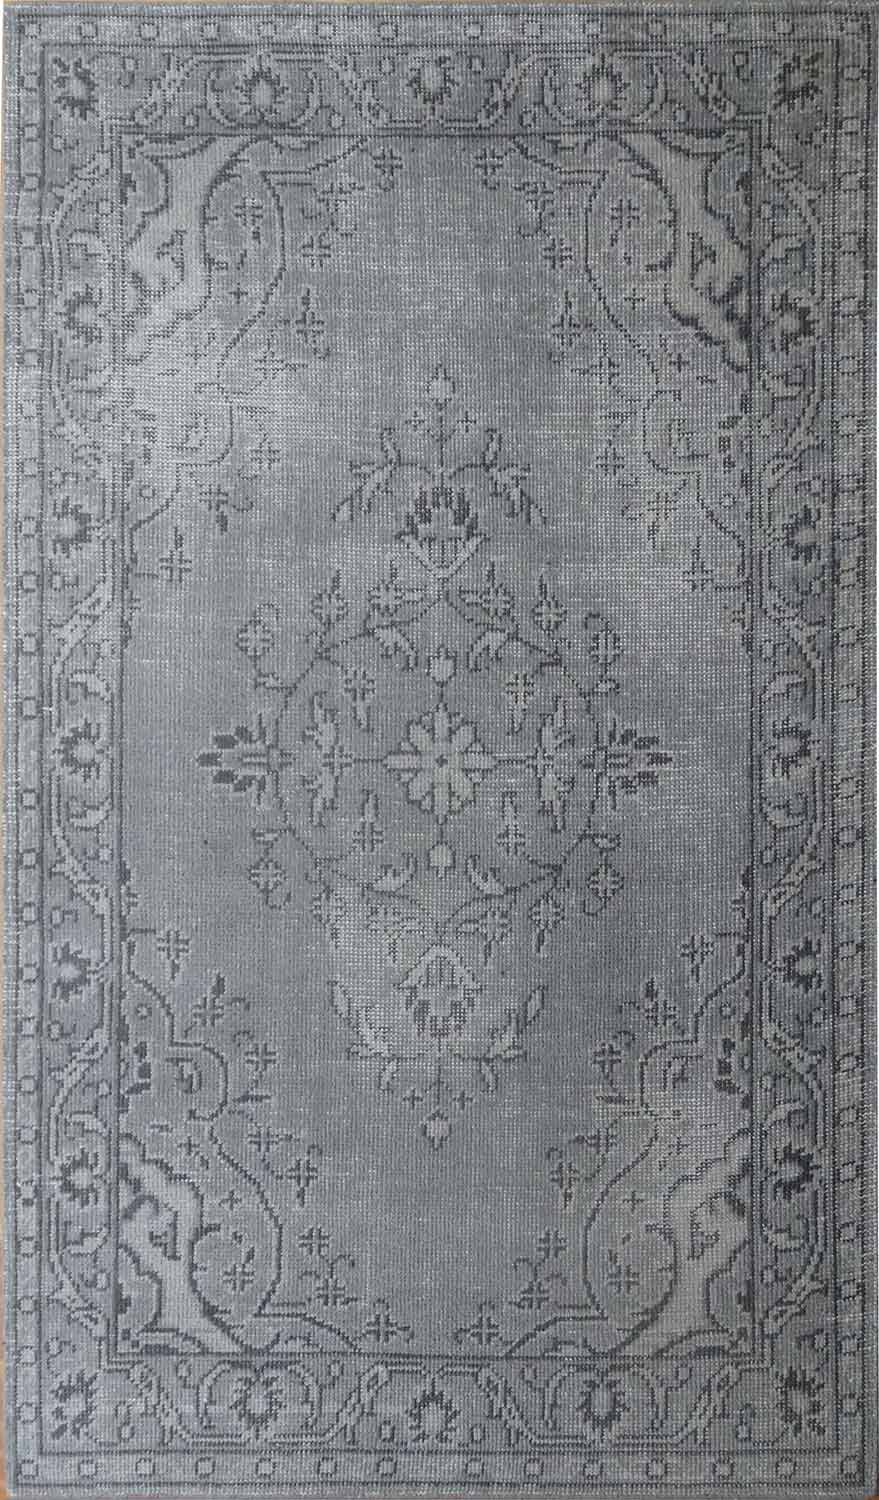 Ren-Wil RCHA-01-58 Chambray Rug - Grey